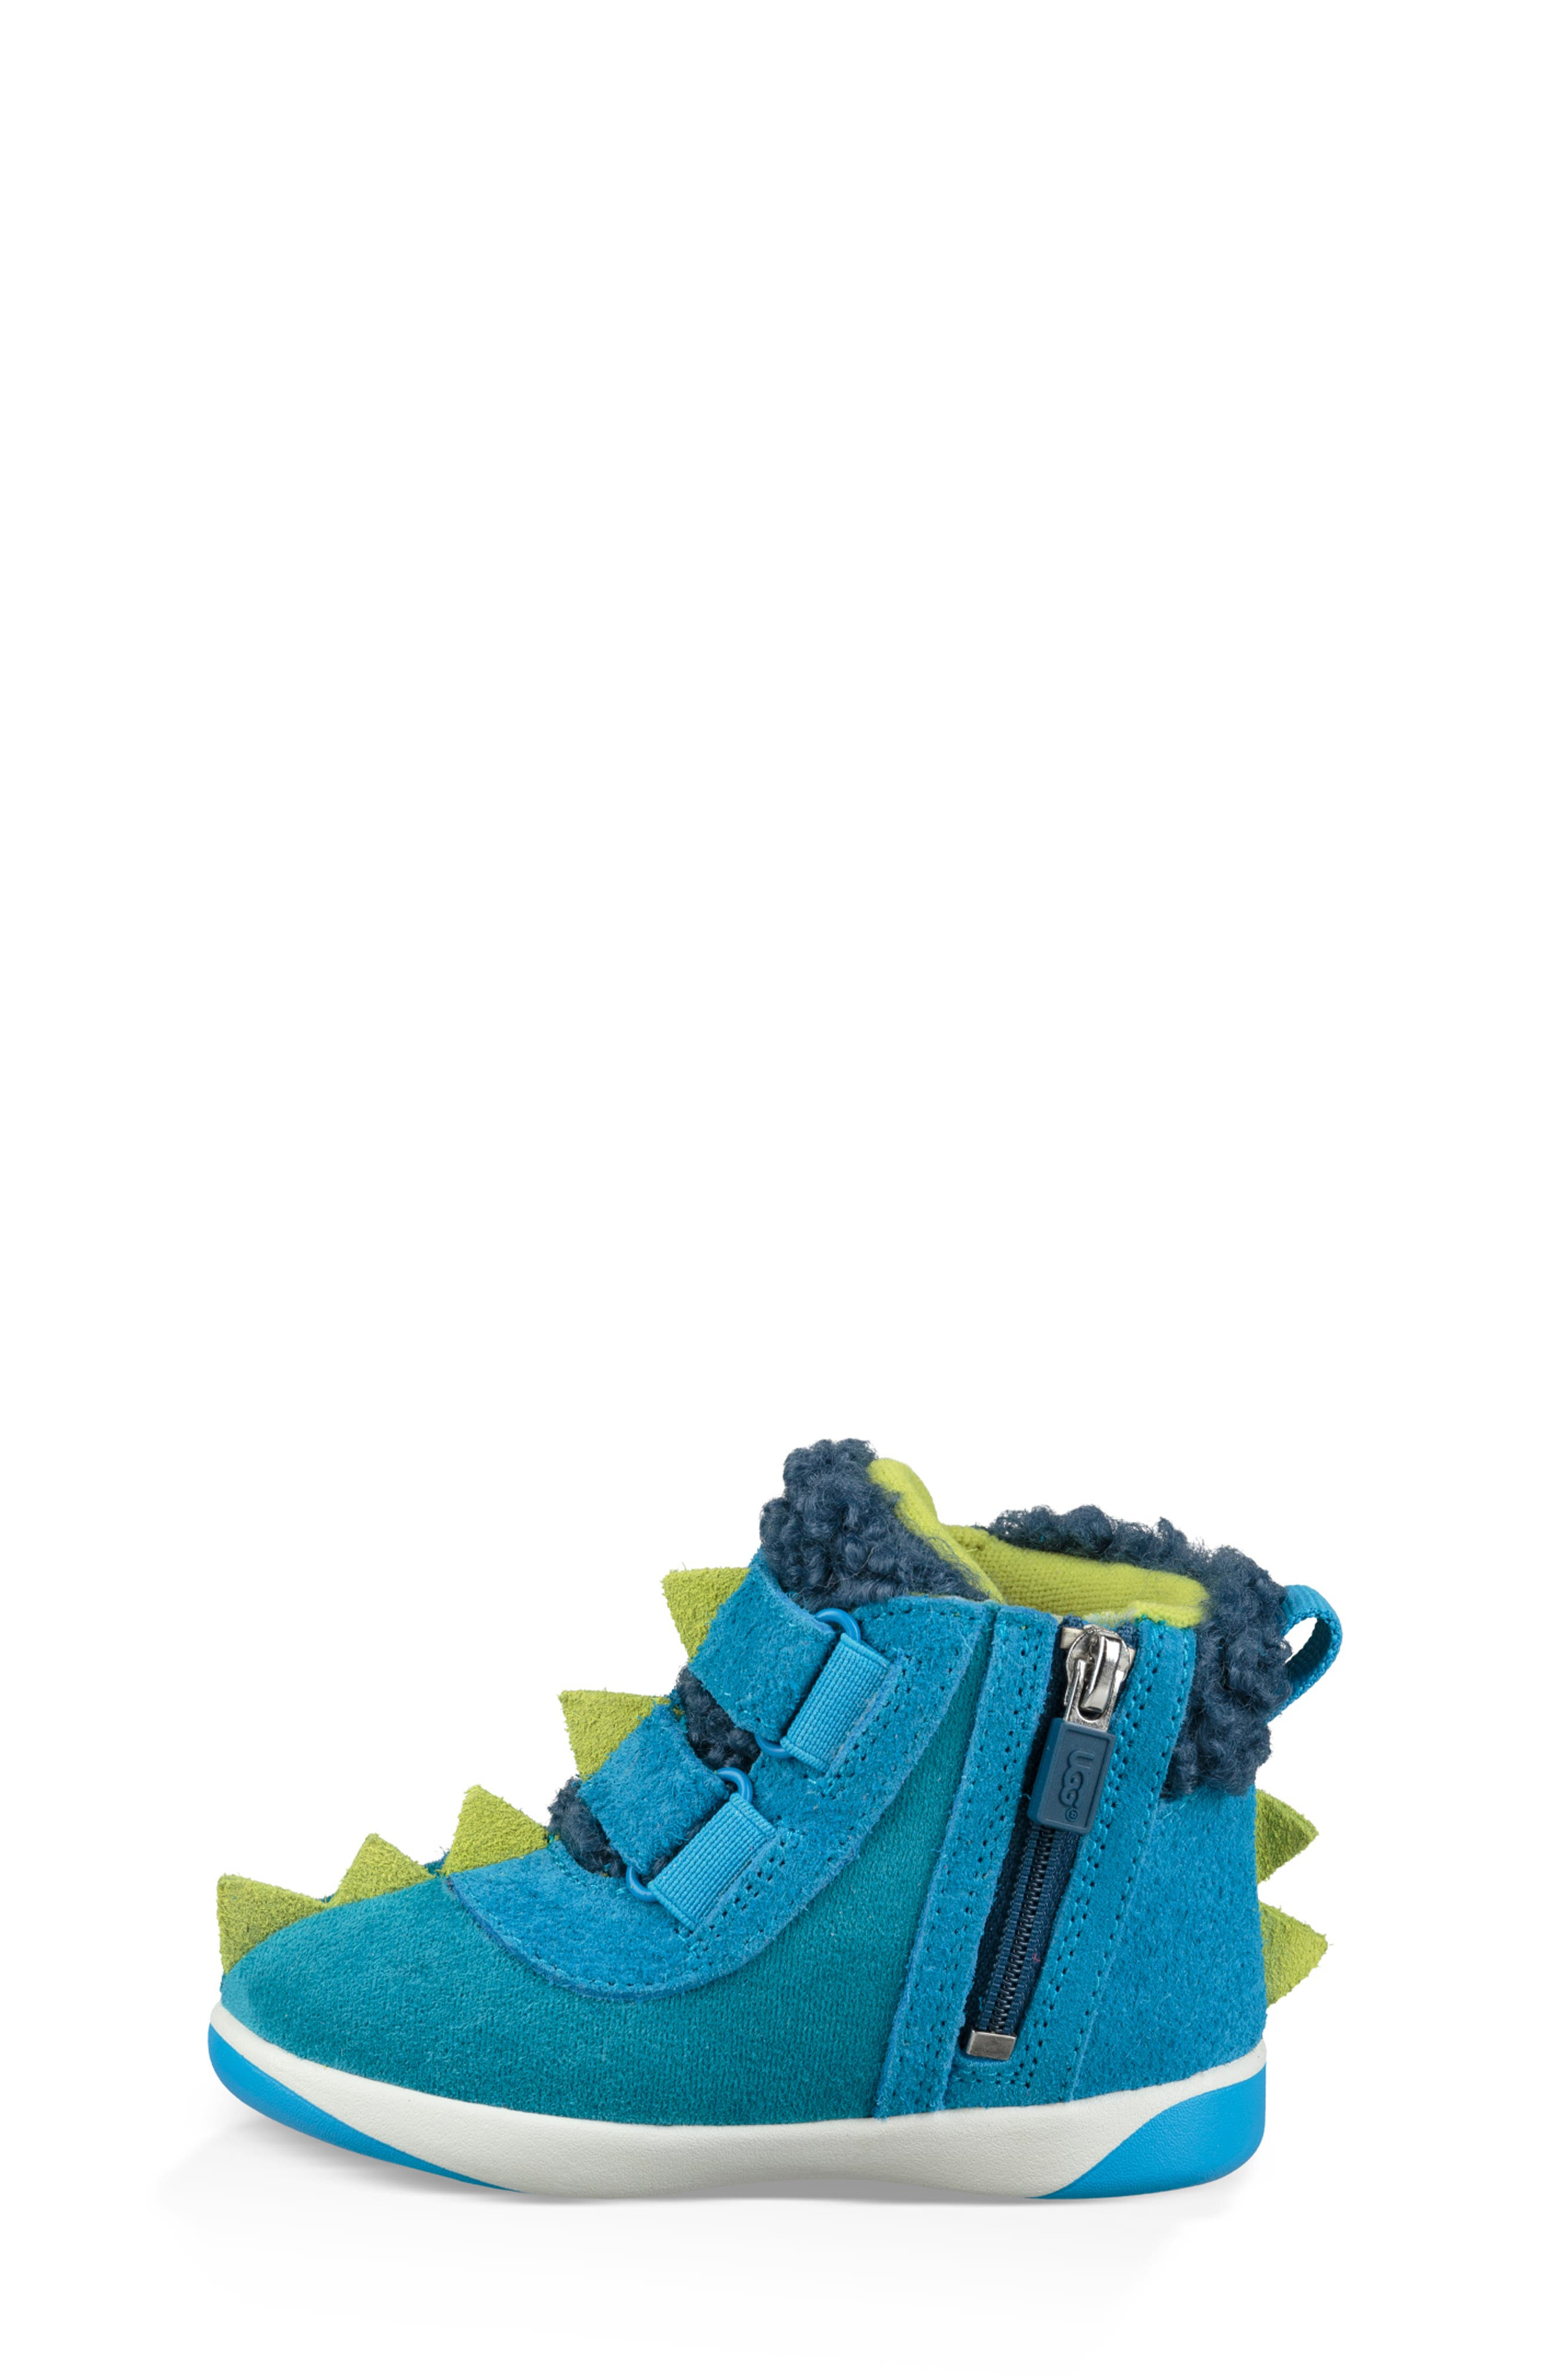 Dydo Pritchard Bootie,                             Alternate thumbnail 6, color,                             BLUE MULTI